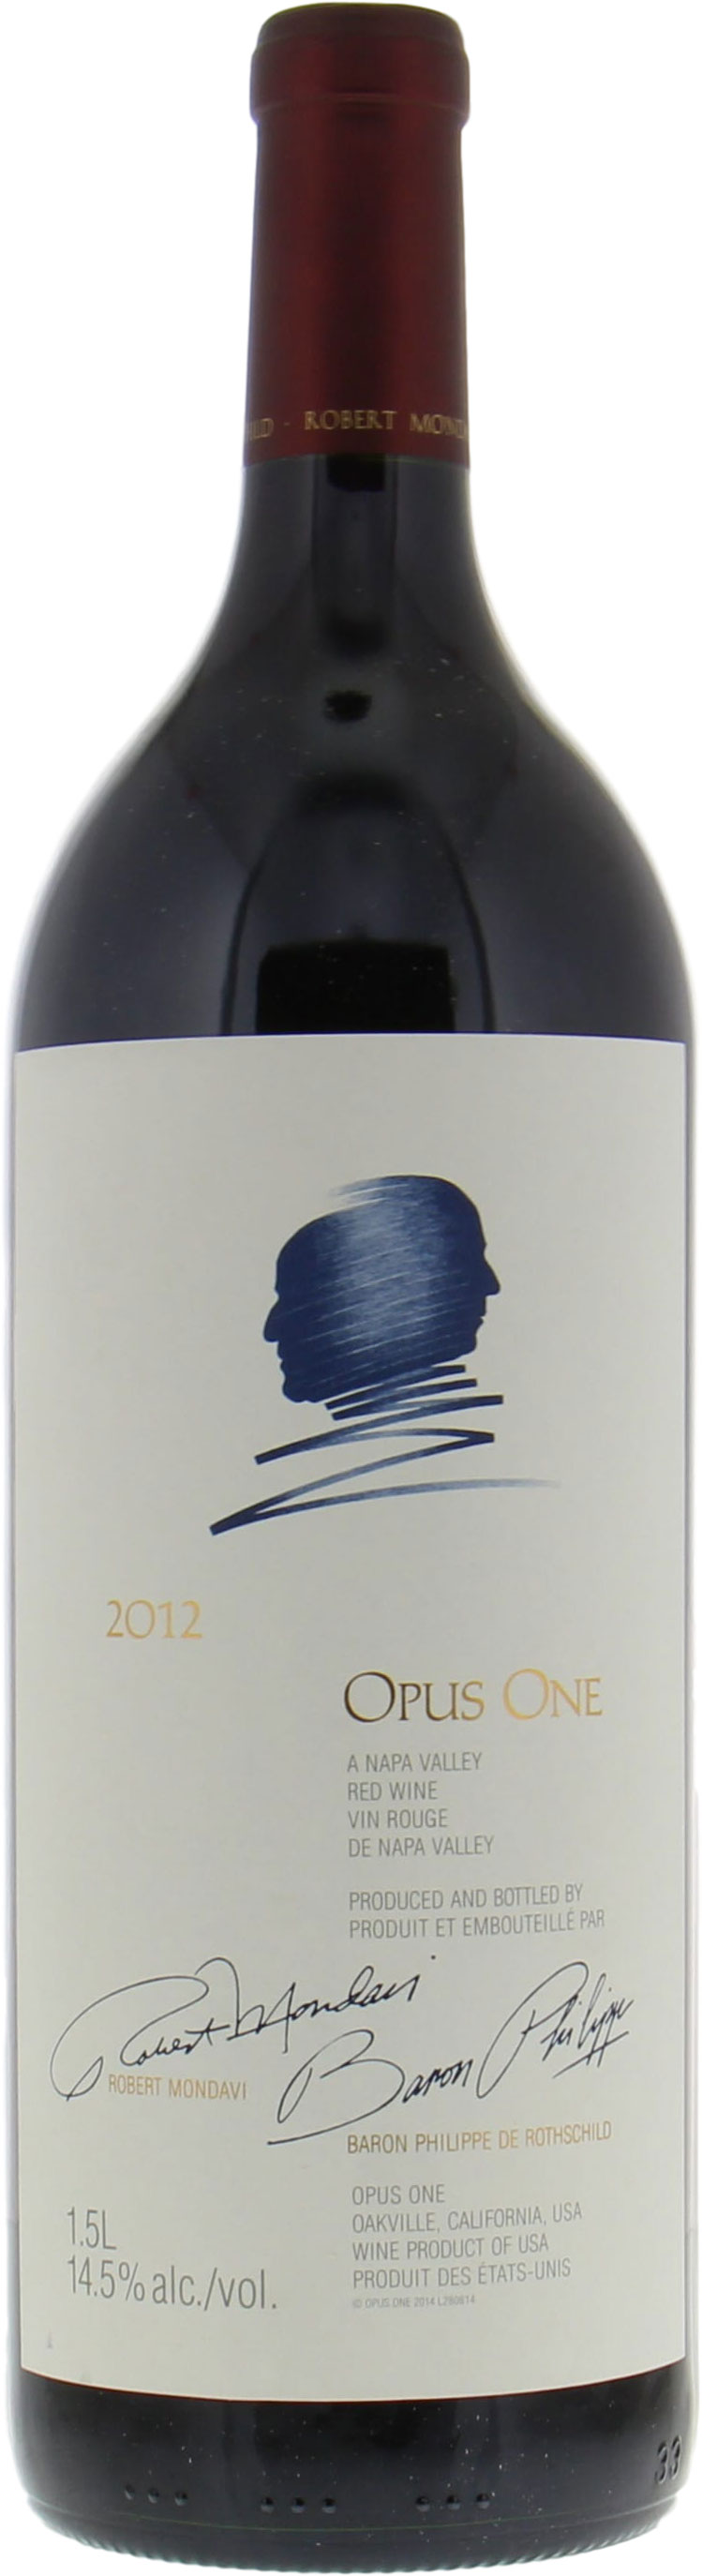 Opus One - Proprietary Red Wine 2012